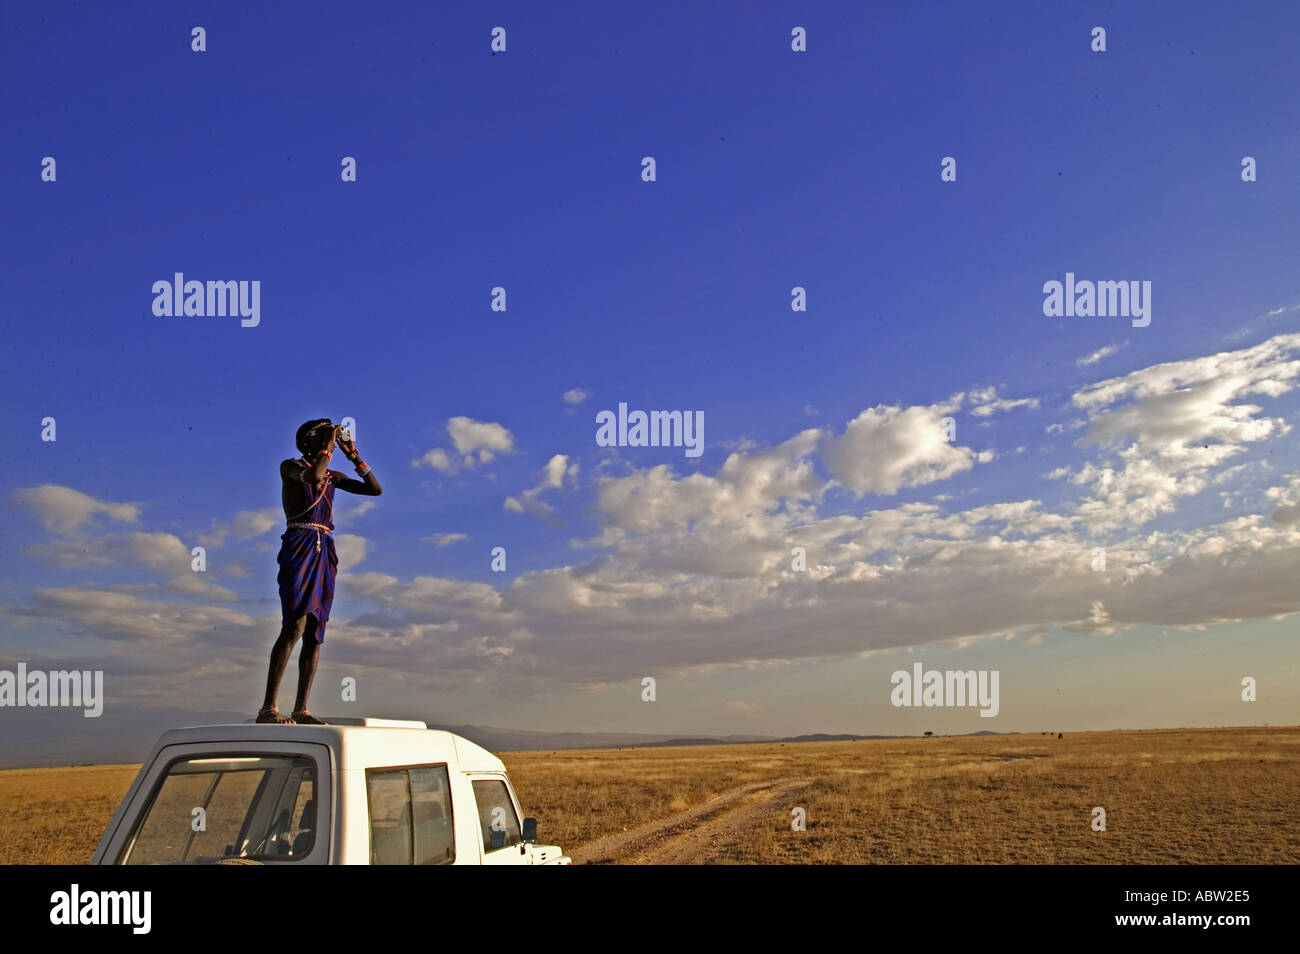 Maasai people Maasai guide looking for animals in the park Model Released Amboseli National Park Kenya - Stock Image